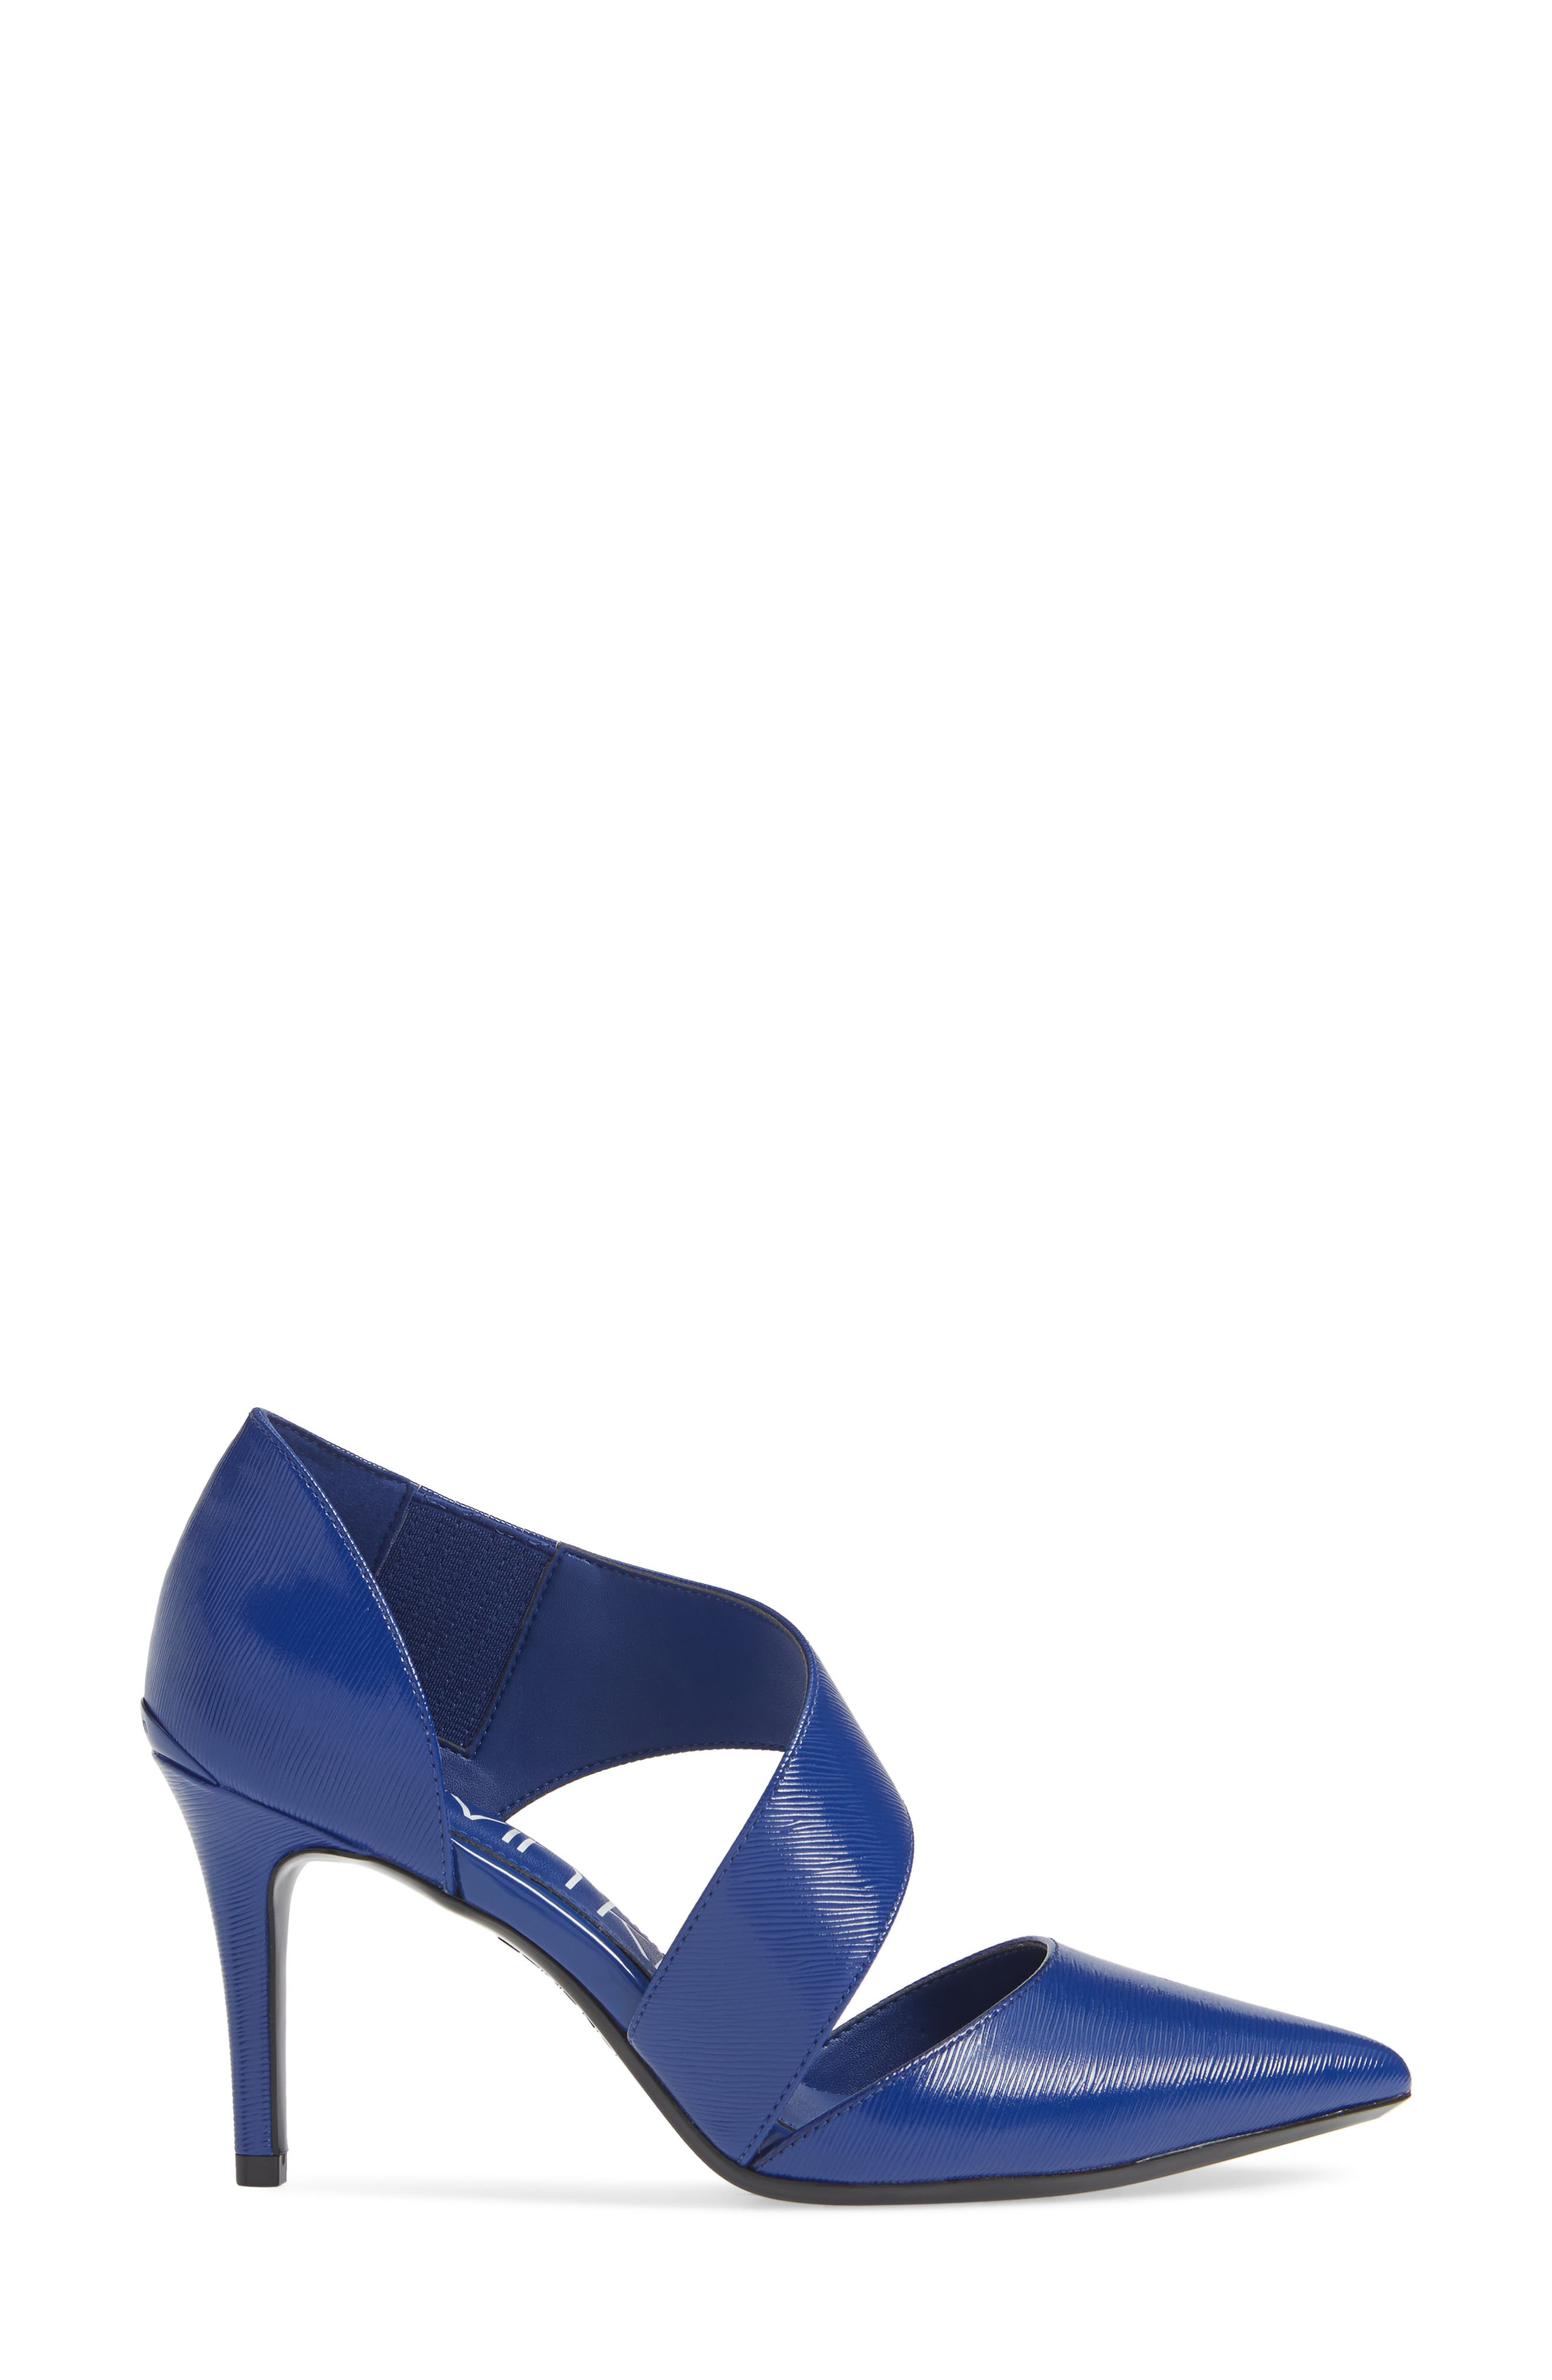 CALVIN KLEIN, 'Gella' Pointy Toe Pump, Alternate thumbnail 3, color, ROYAL BLUE PATENT LEATHER